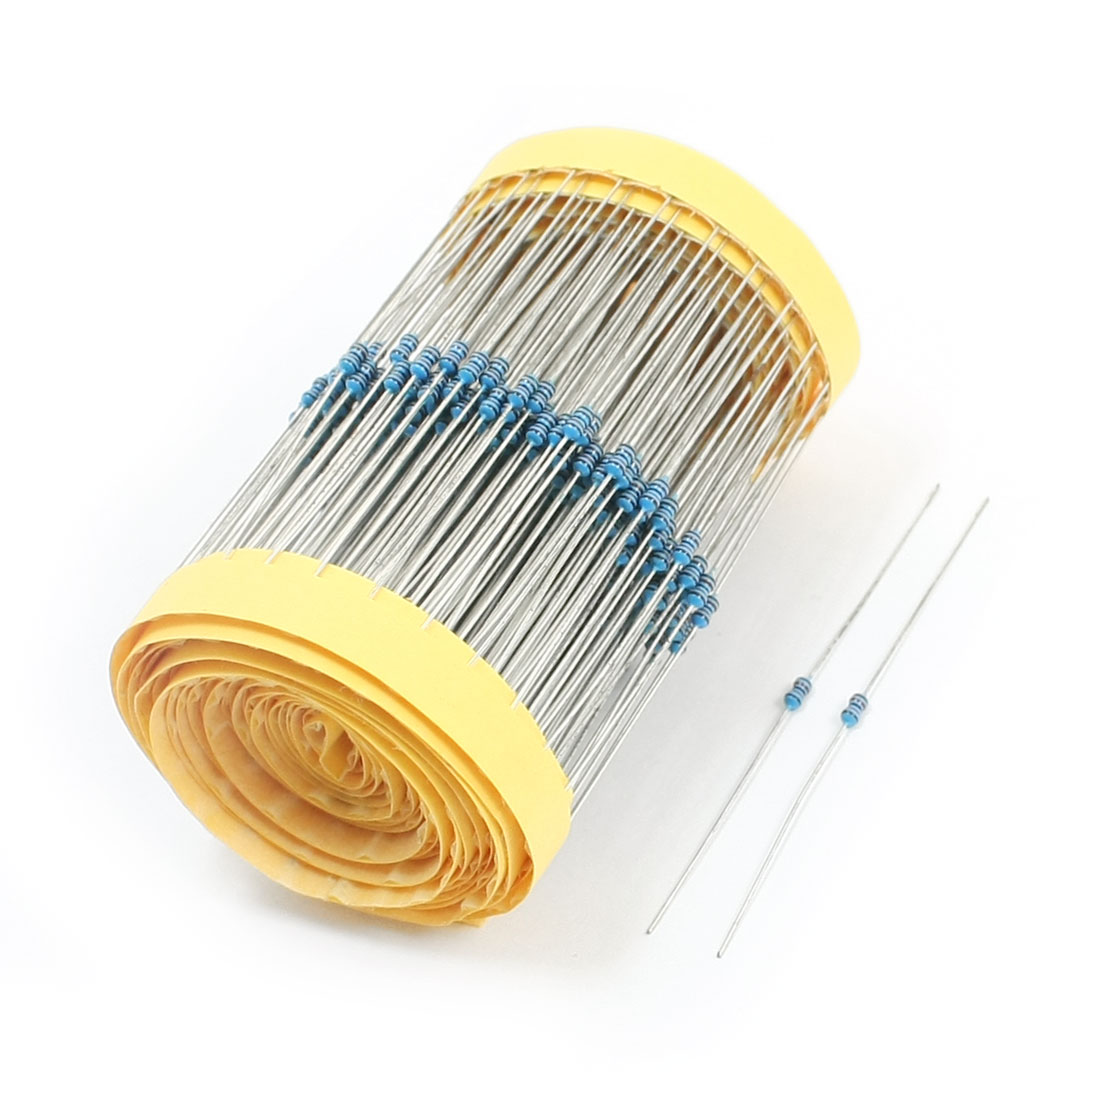 600PCS 1/8Watt 130K Ohm 1% Tolerance Axial Lead Metal Film Resistors